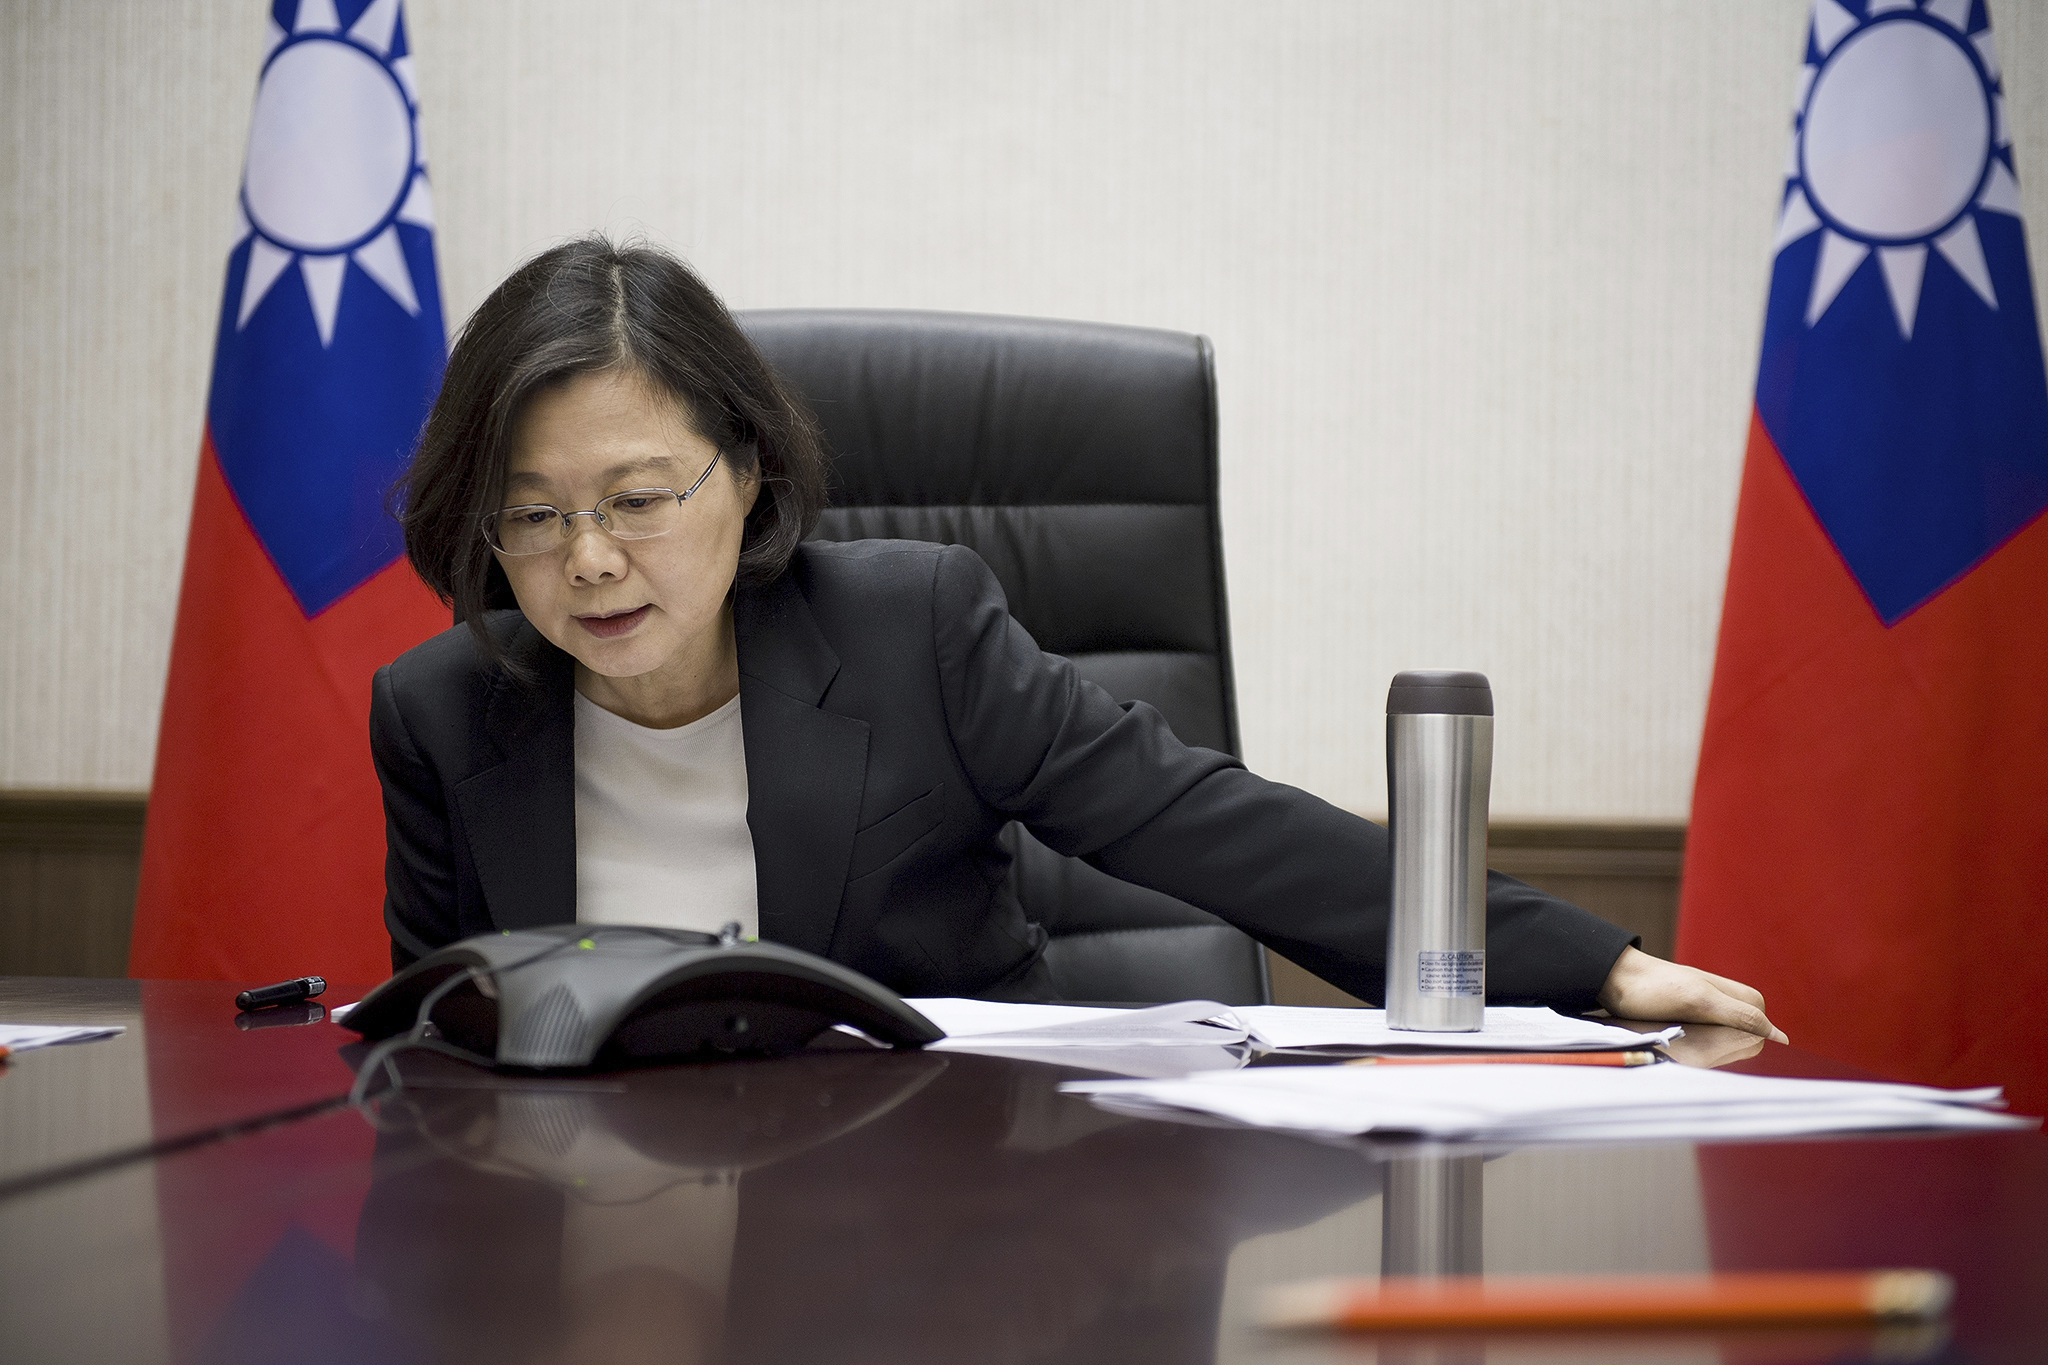 In this Friday, Dec. 2, 2016 photo released by Taiwan Presidential Office Saturday, Dec. 3, 2016, Taiwan's President Tsai Ing-wen speaks with U.S. Pre...